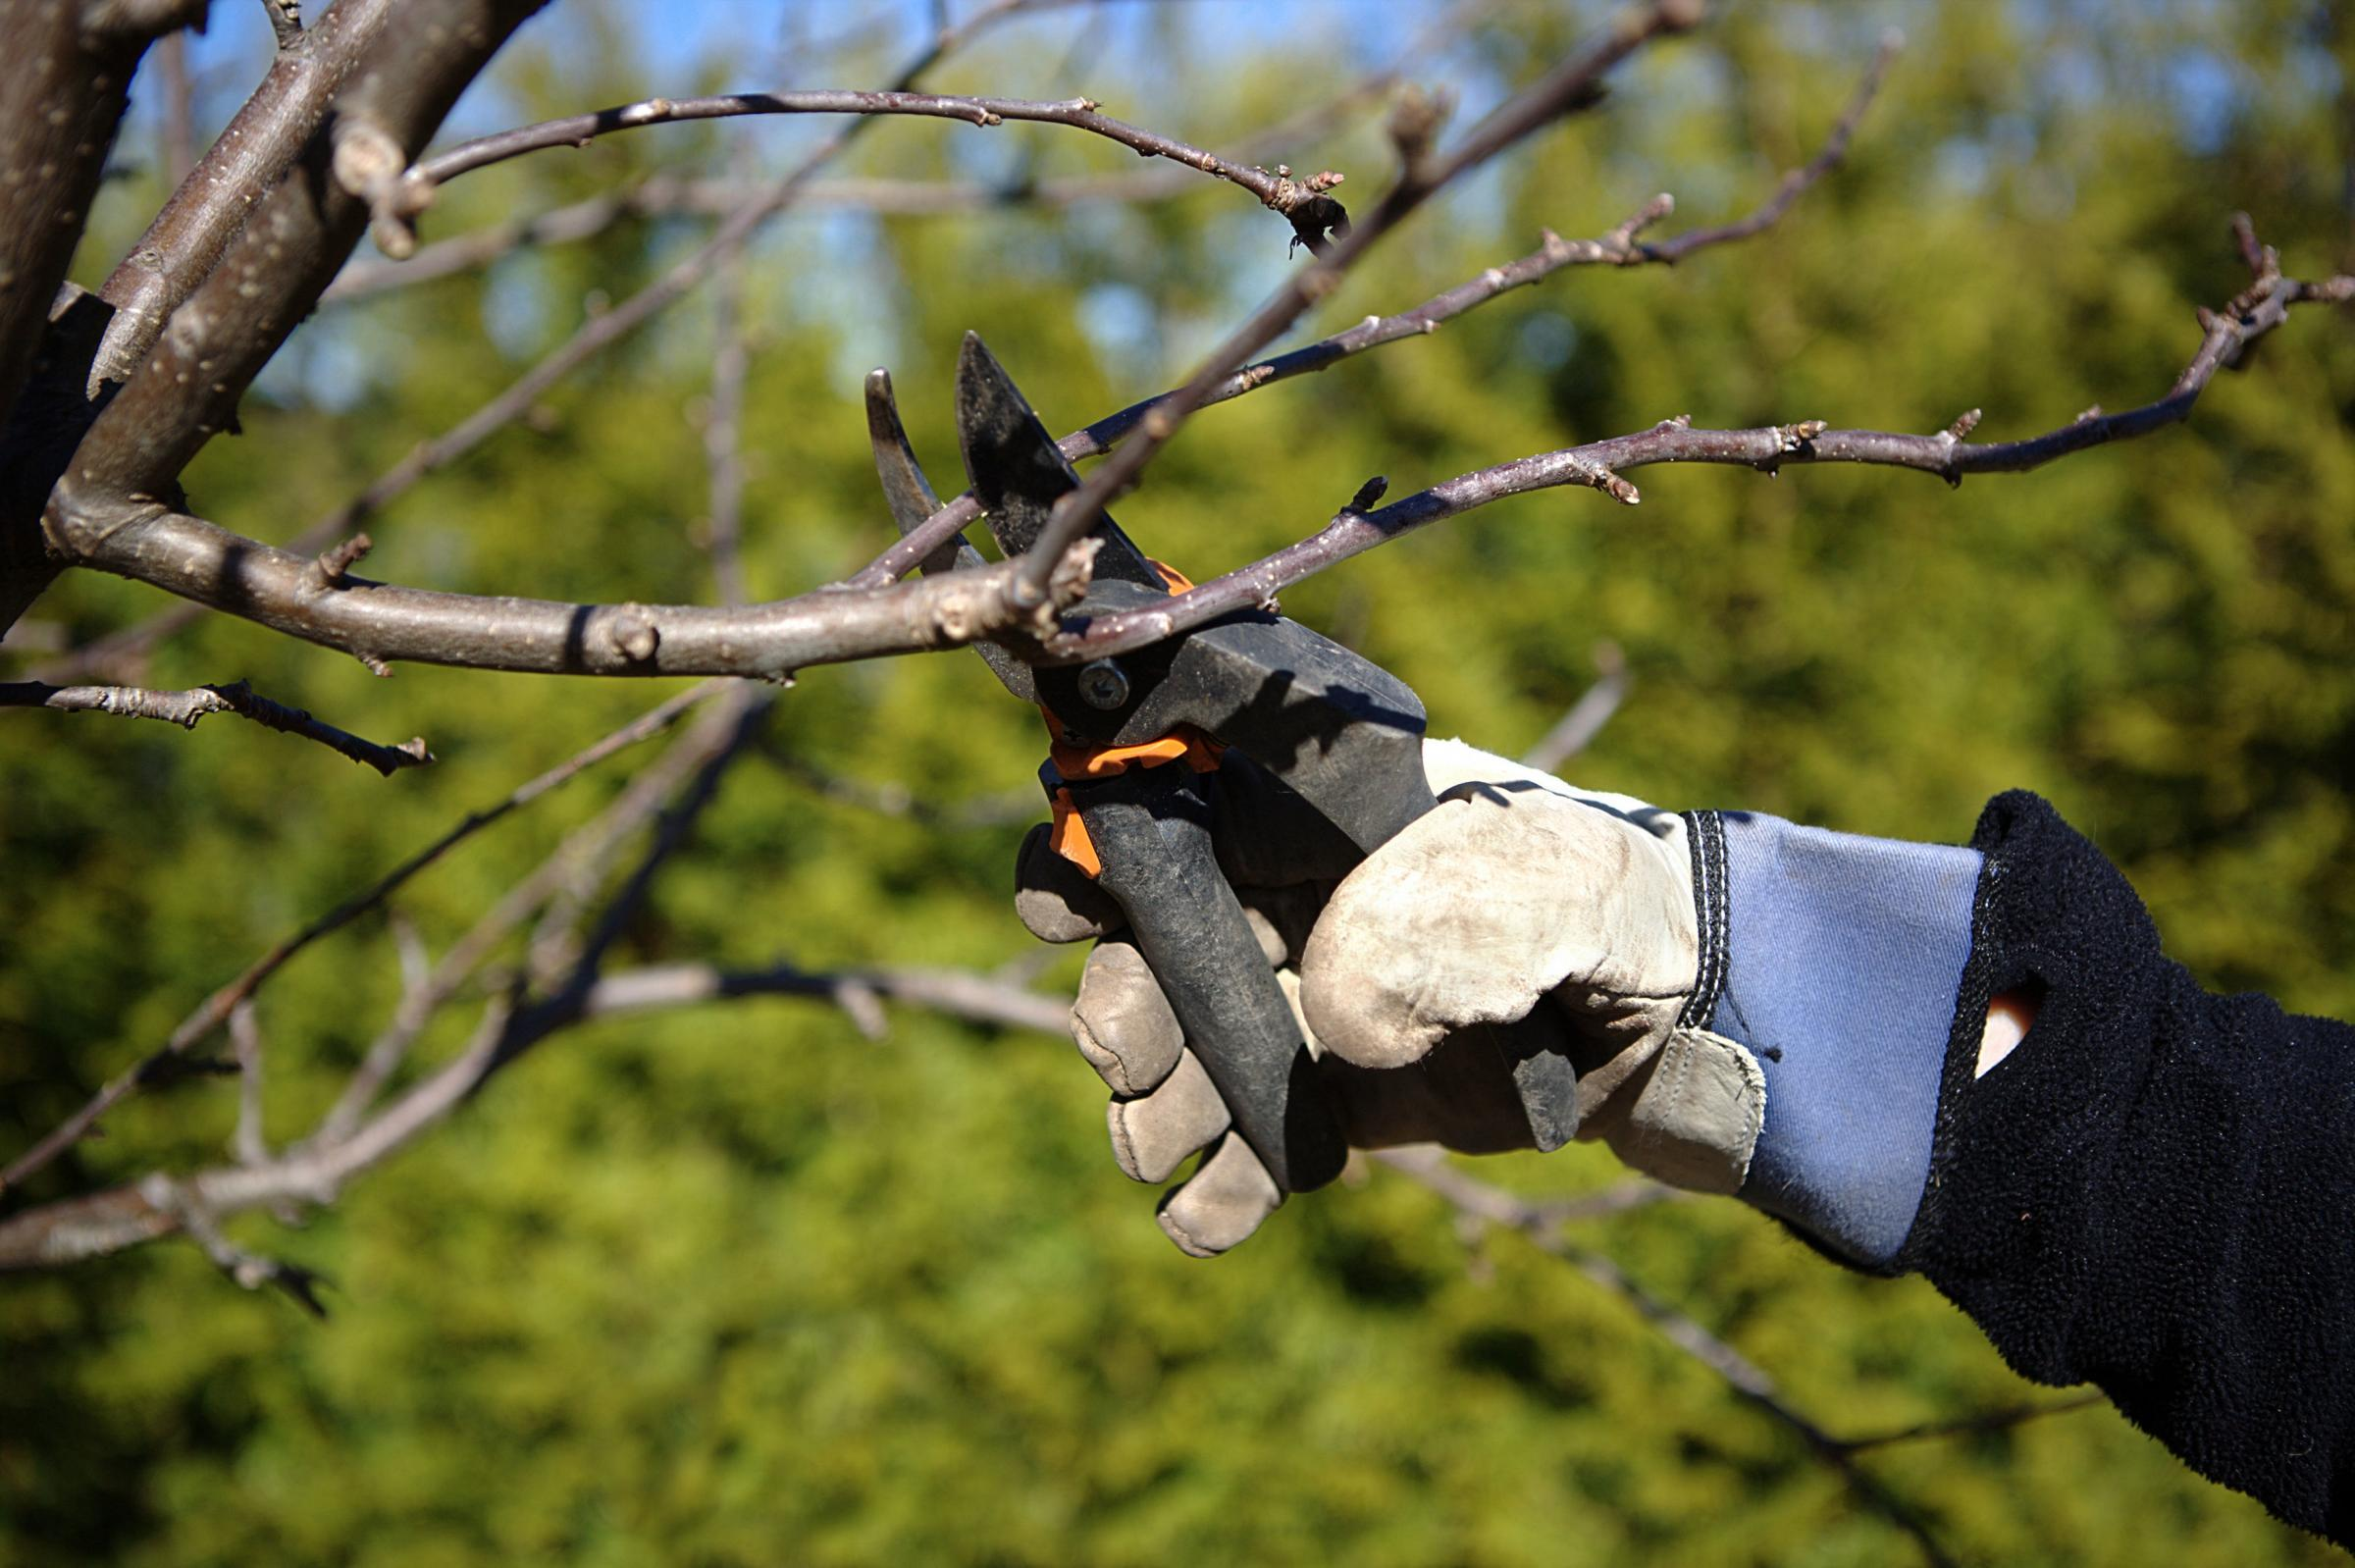 Gardening: What to prune now (and what to avoid pruning)